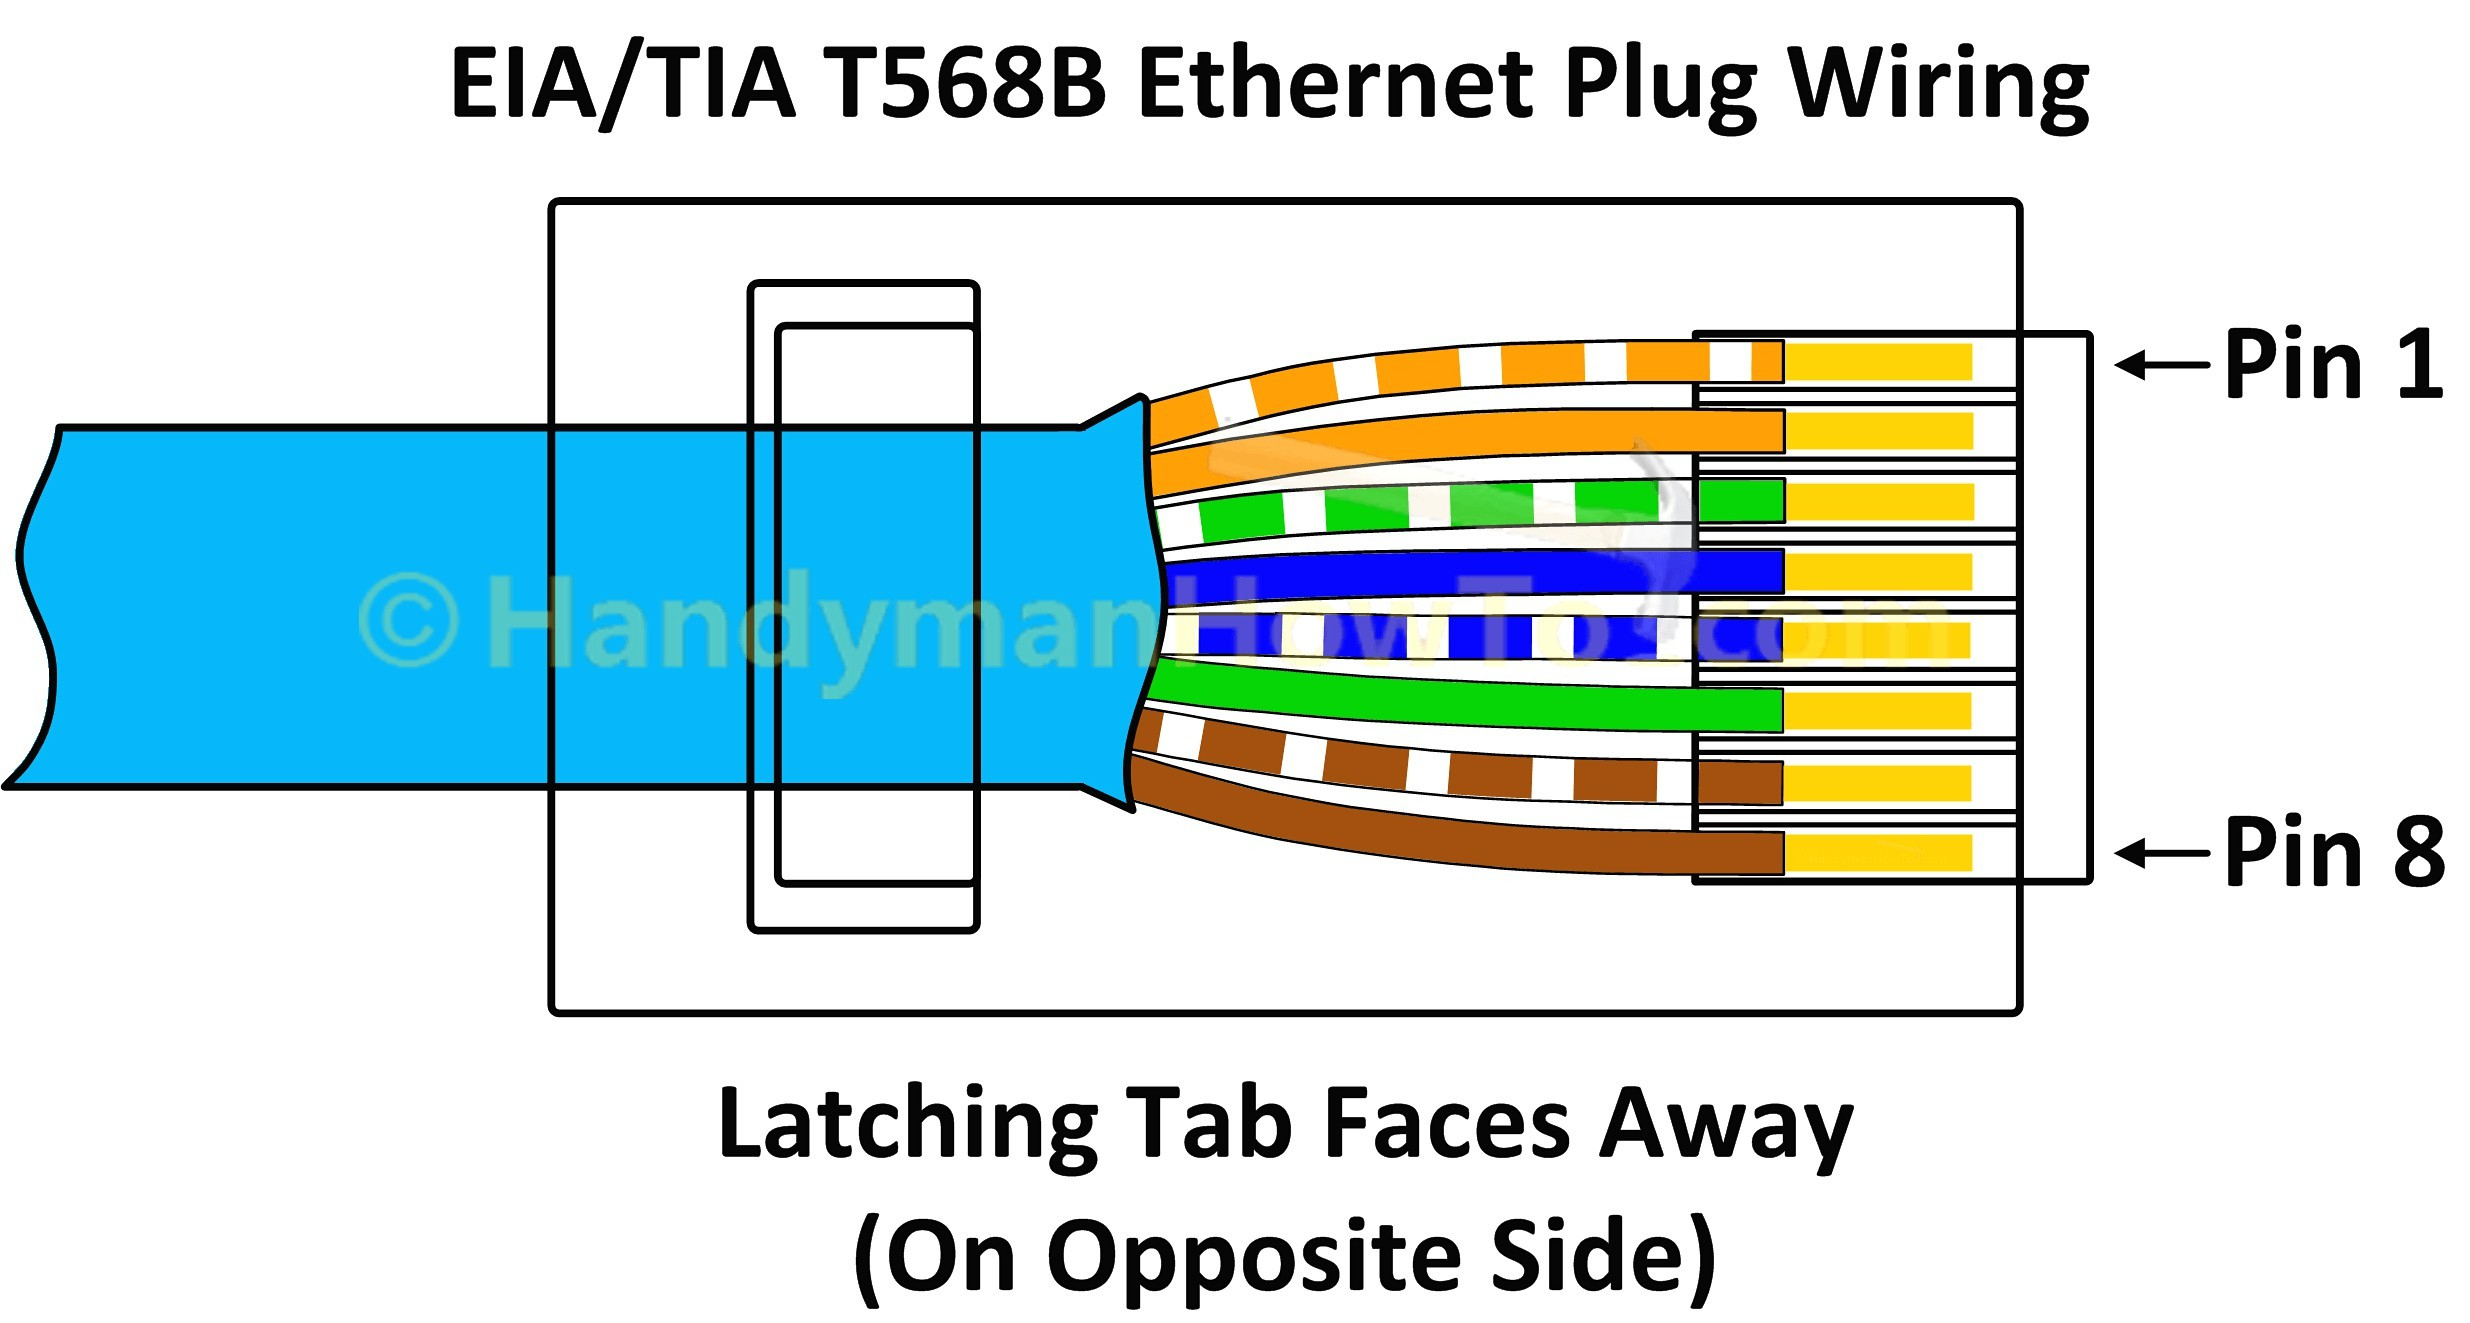 cat 5 wiring diagram wall jack Download-Cat 5 Wiring Diagram B Standard Bakdesigns Co And Cat5 Noticeable 8-p